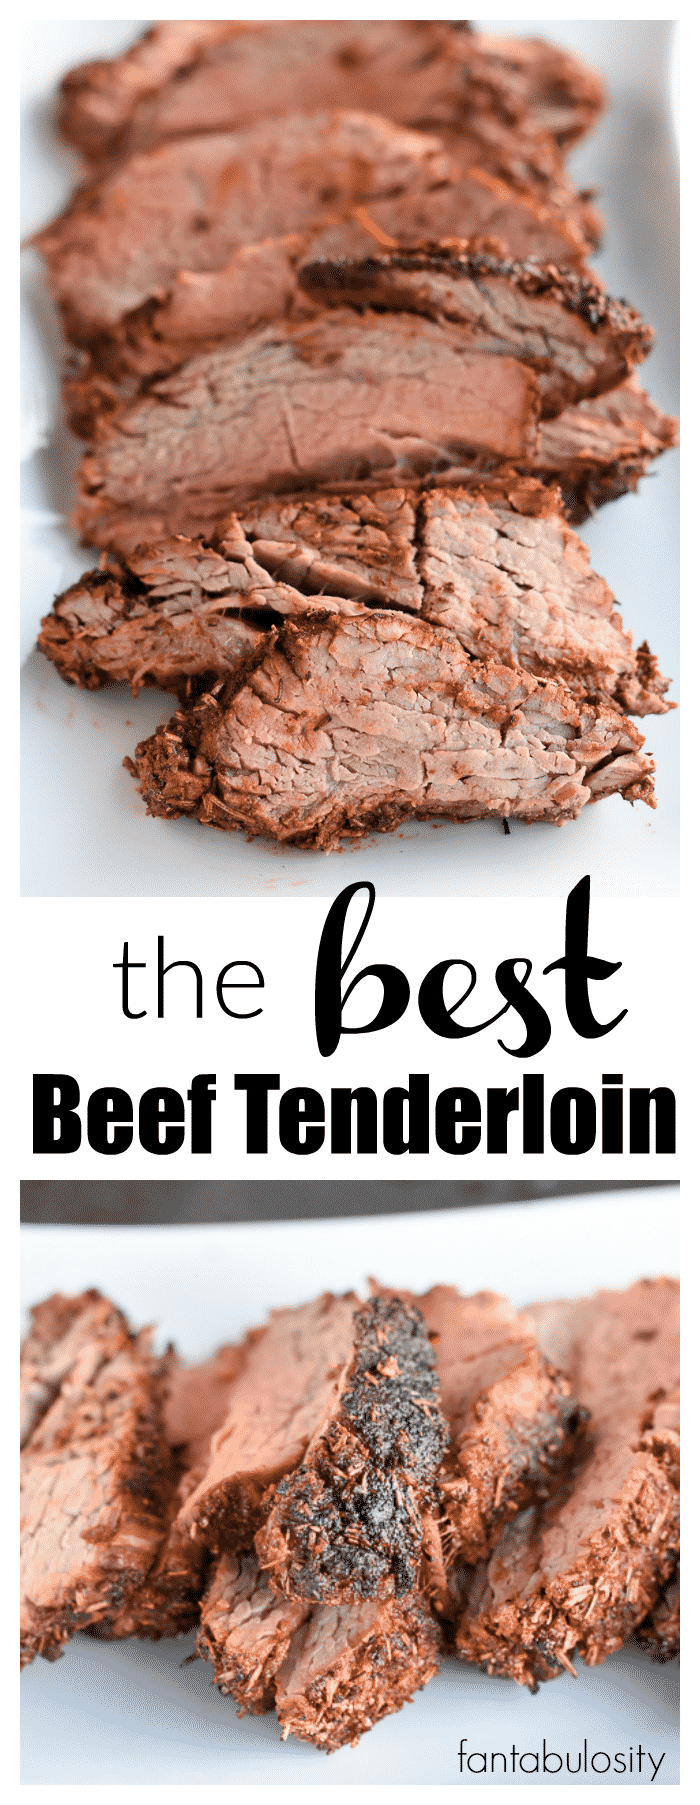 Holy Cow!!! This is the BEST Beef Tenderloin Recipe around! https://fantabulosity.com